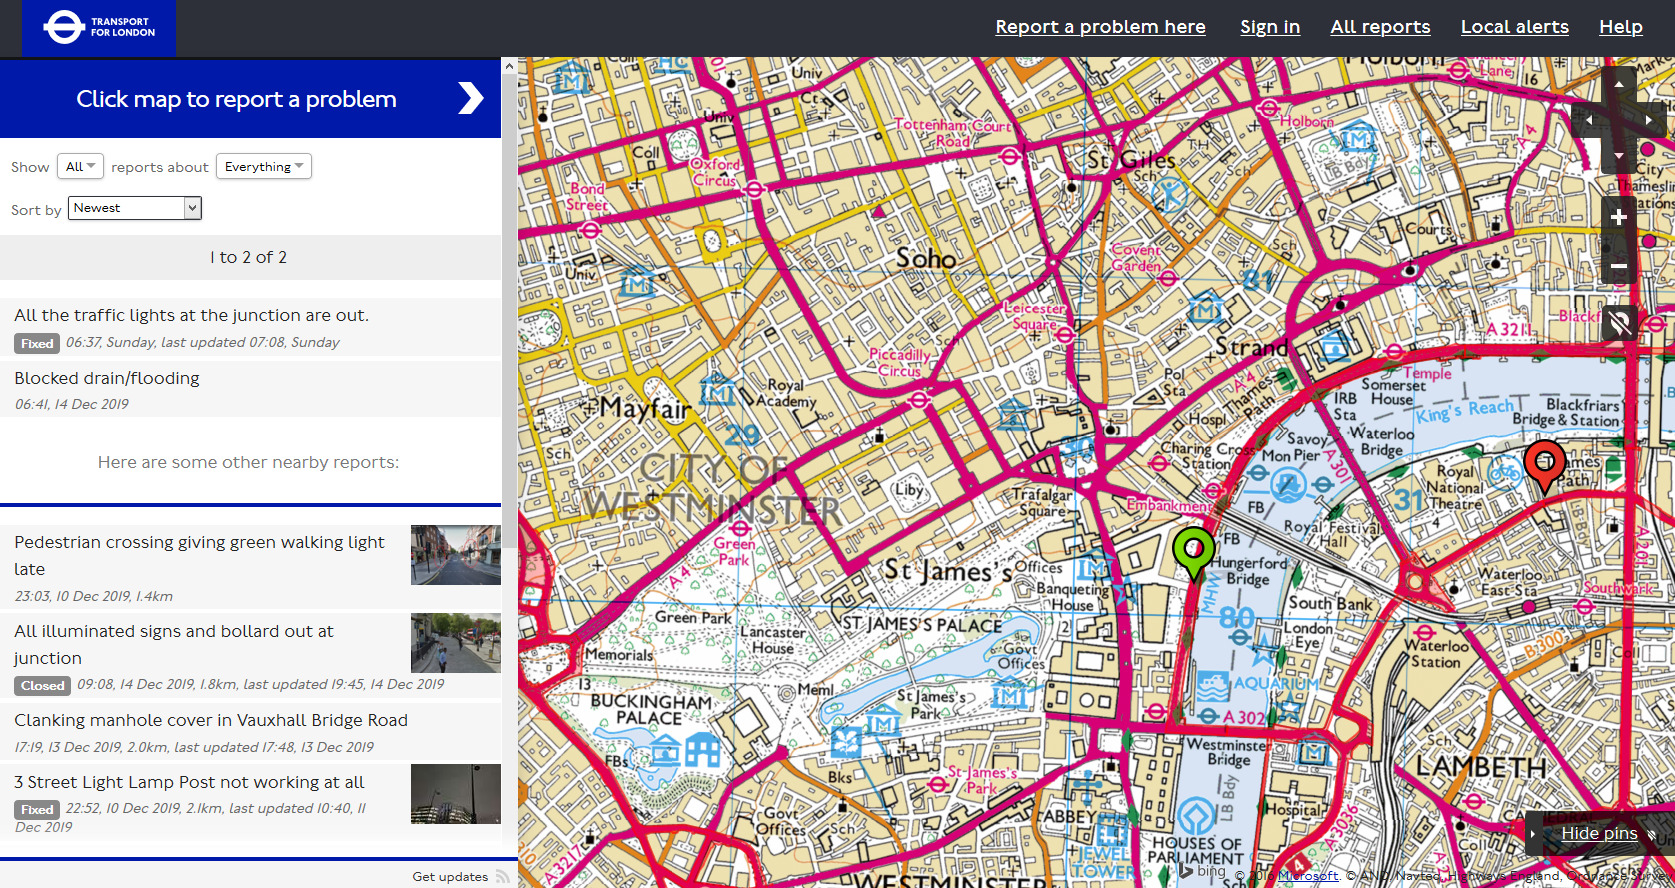 FixMyStreet interface for TfL